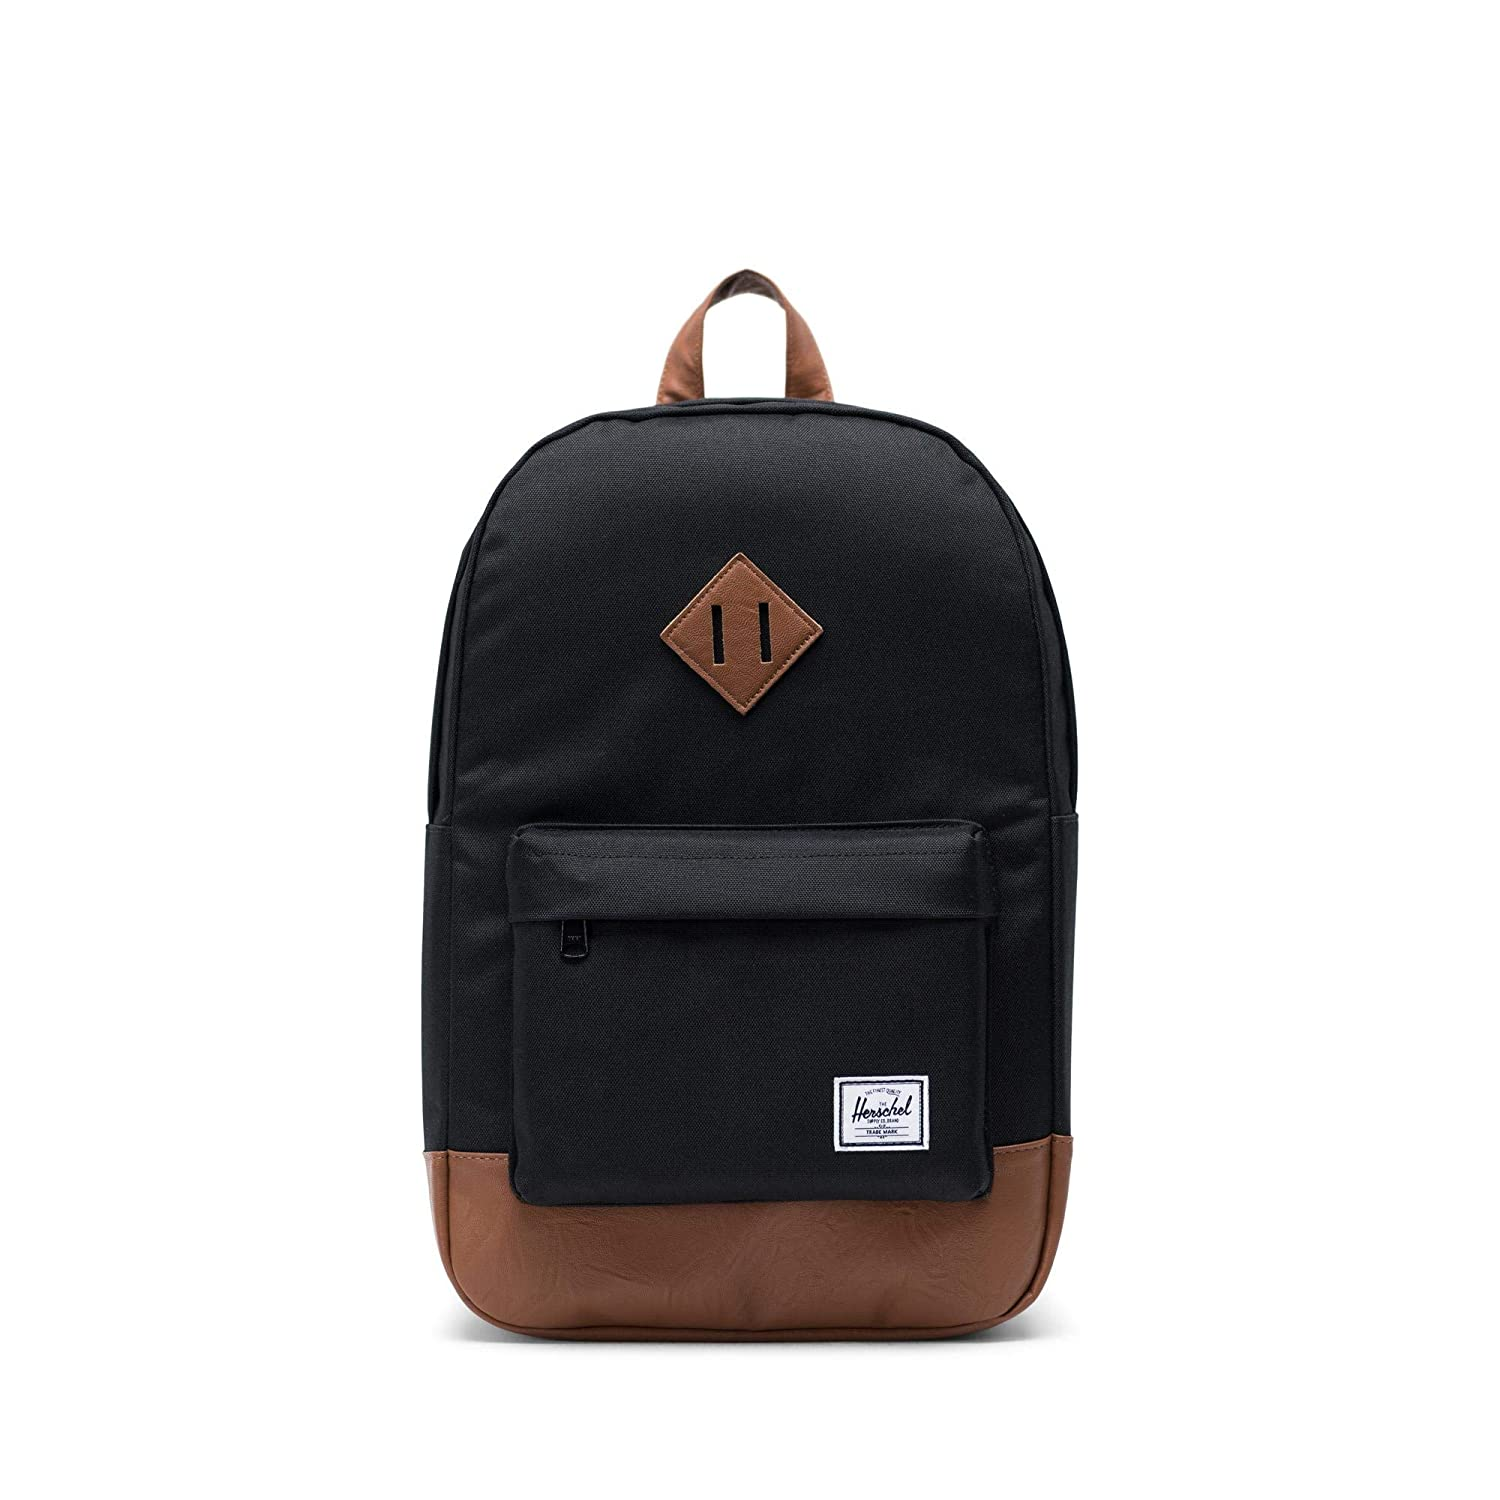 bfb65e1e094 Amazon.com   Herschel Heritage Mid-Volume Backpack-Black   Casual Daypacks